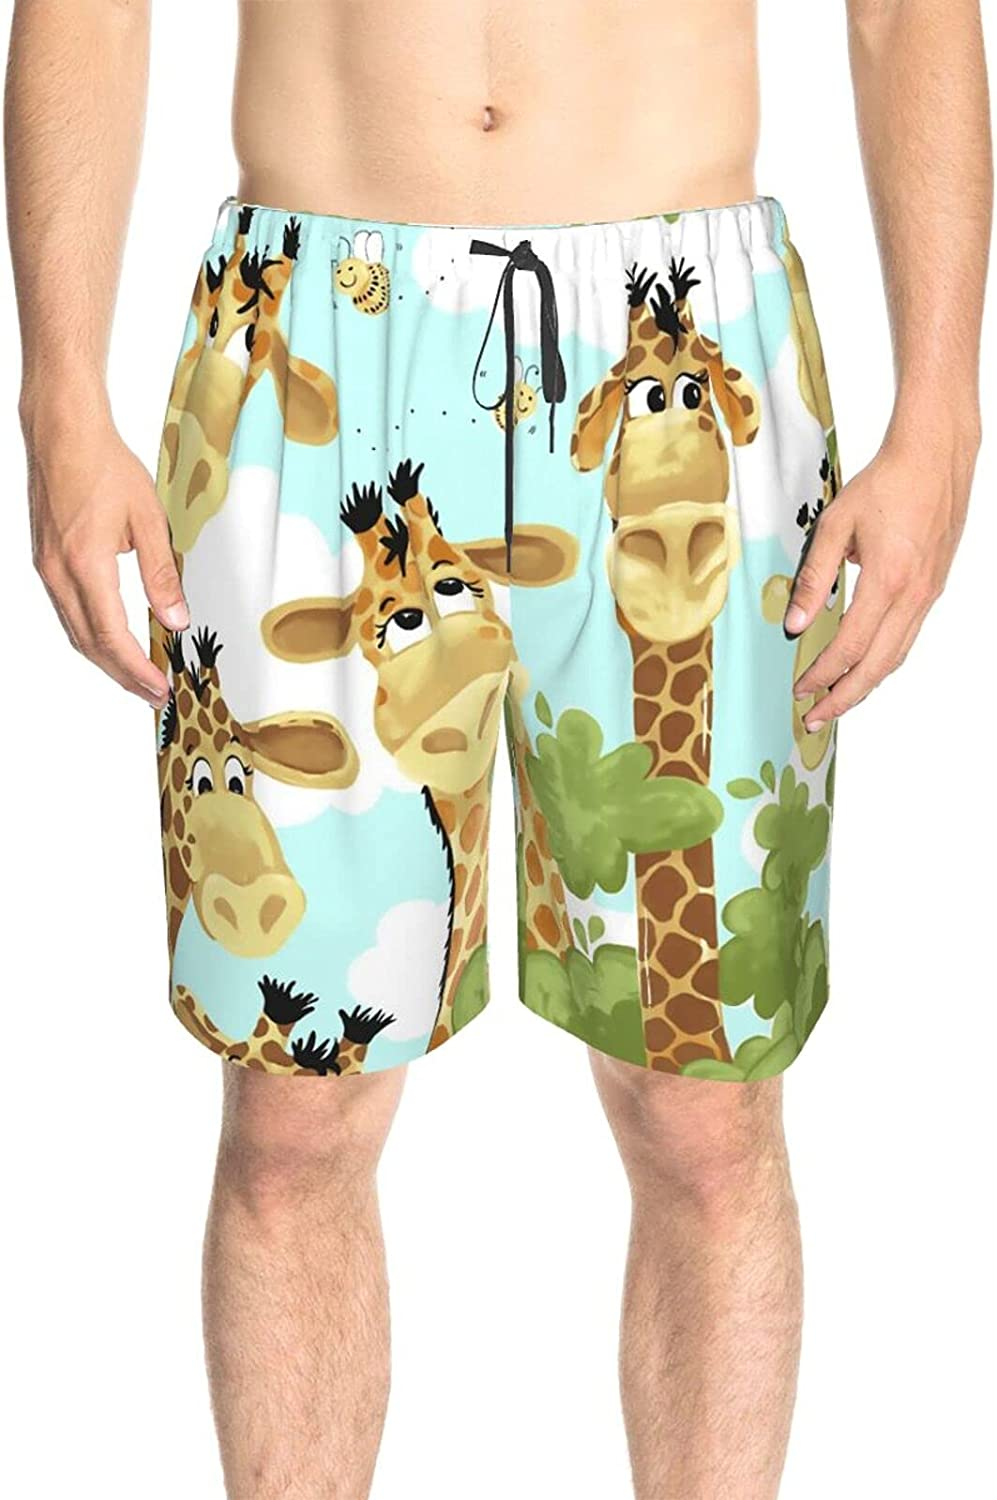 JINJUELS Mens Bathing Suits Cute Giraffe Forests Swim Board Shorts Drawstring 3D Printed Swimming Trunks with Mesh Lining